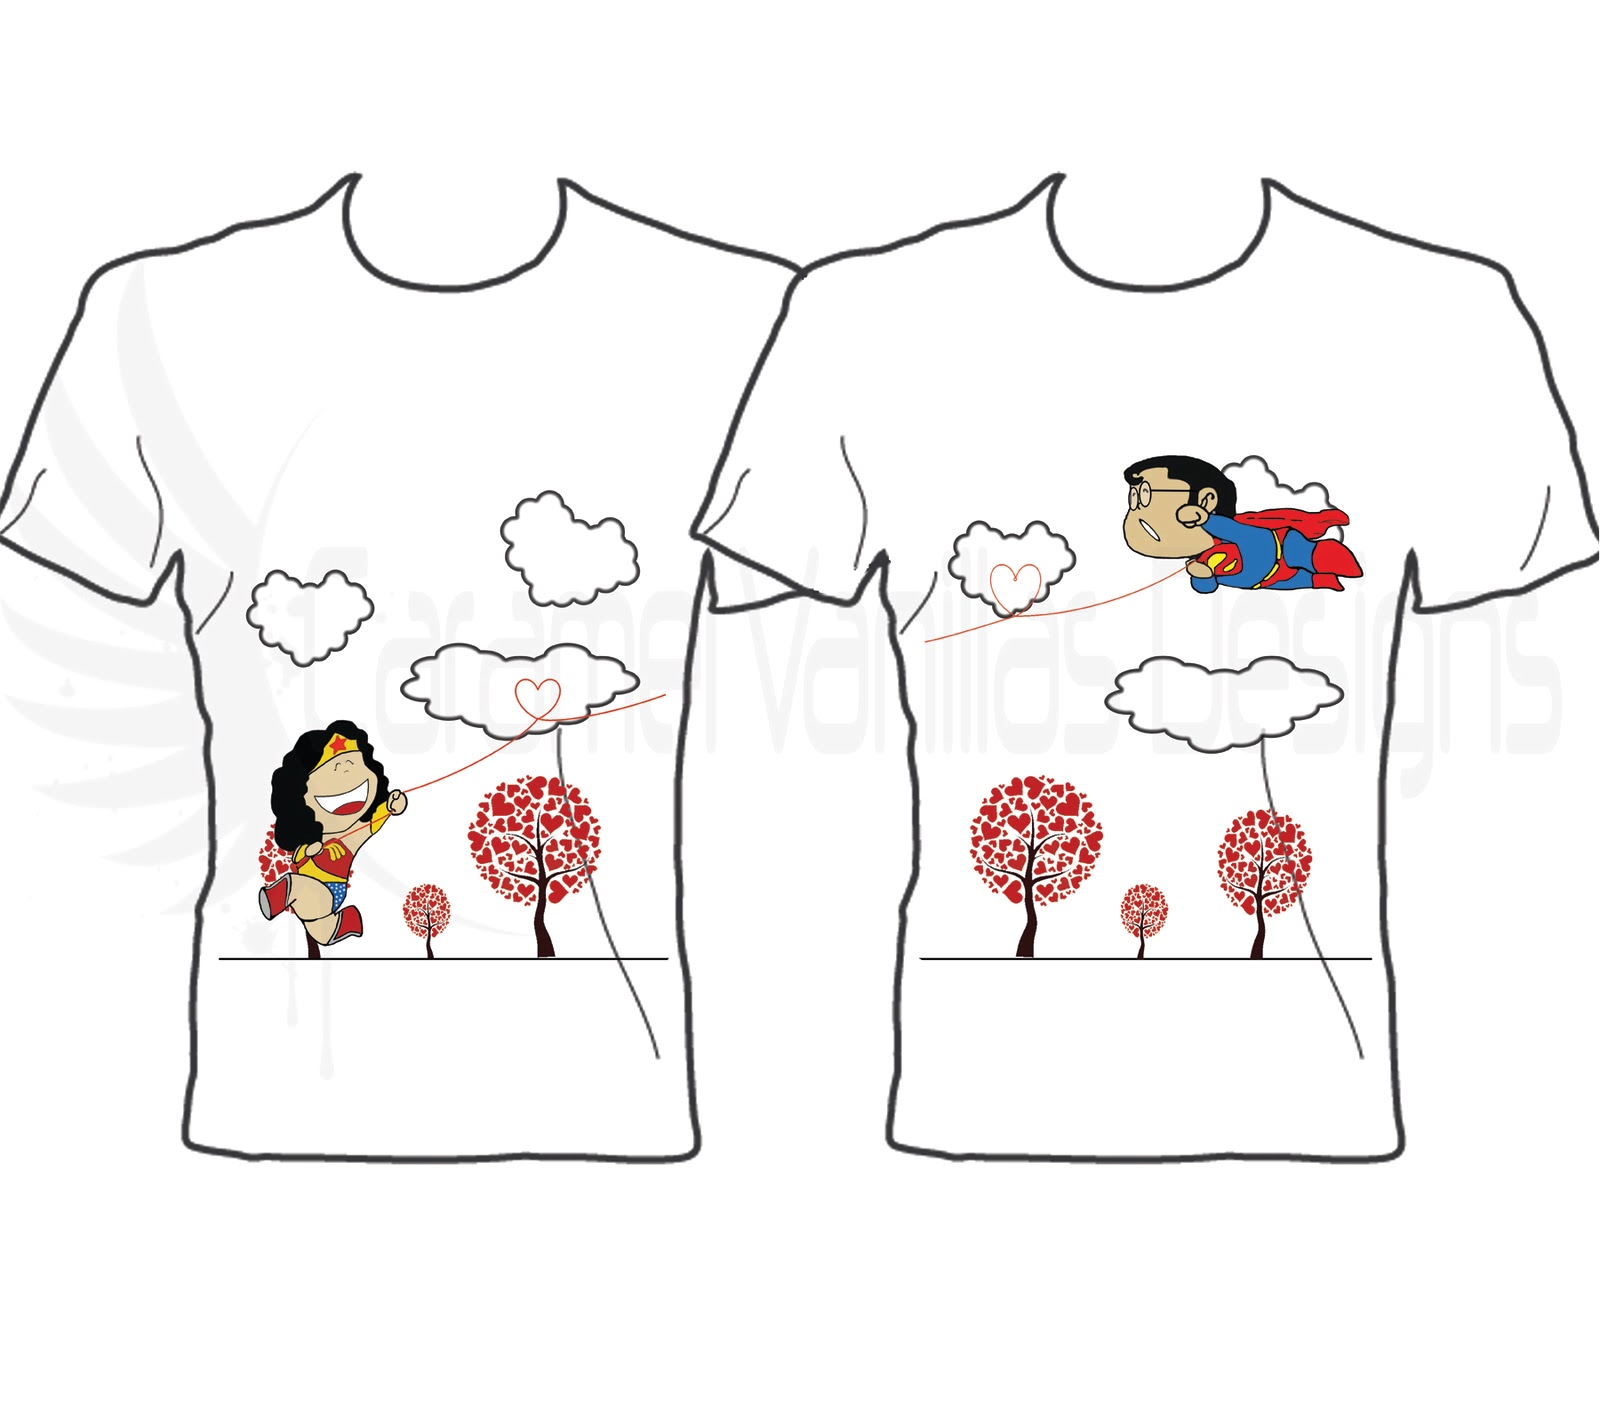 Shirt design couple shirts printing statement shirts - Very Cute Couples T Shirts They Would Be Perfect For An Anniversary Gift Or Valentines Marriage Fun Pinterest Disney Disney Princess And Tattoo